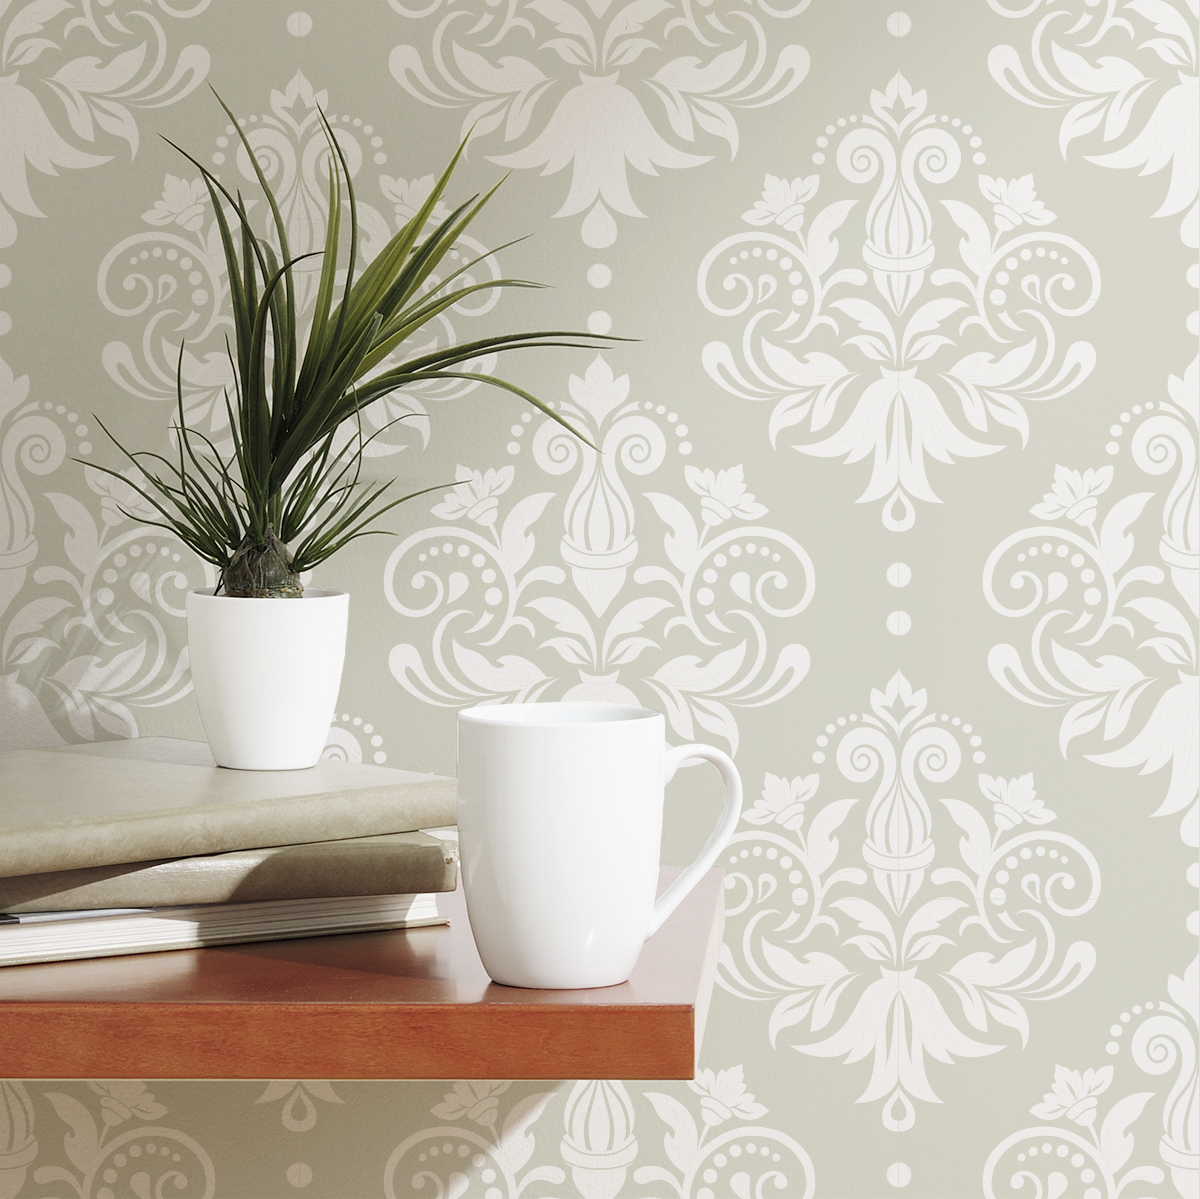 Removable Wallpaper For Renters.Free Download Damask Pattern Removable Wallpaper Is Perfect